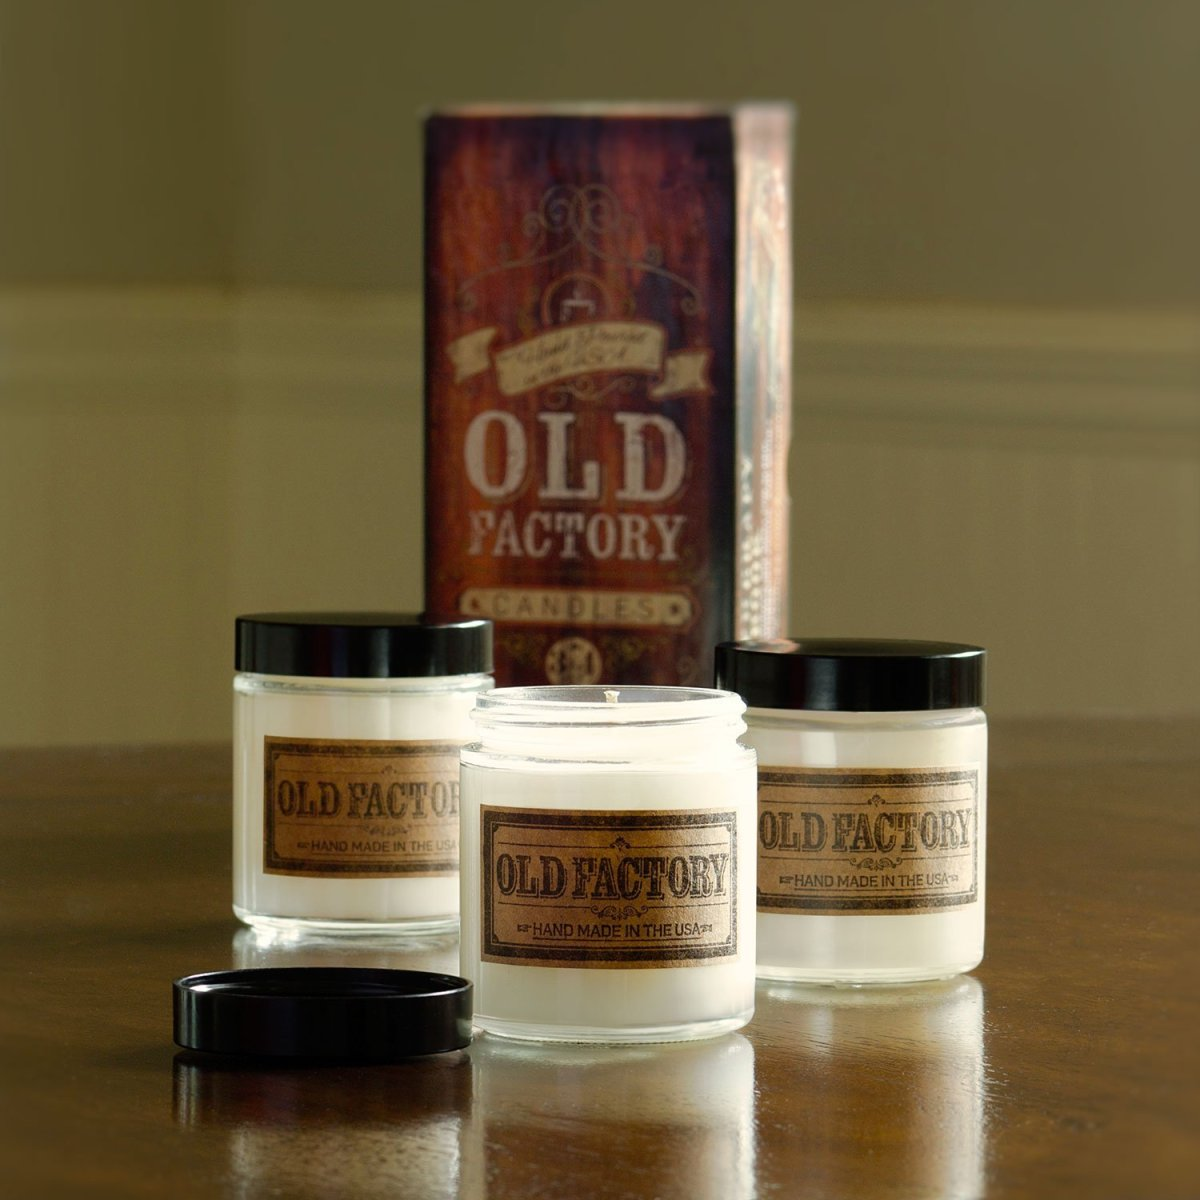 Old Factory Candle Gift SetReview